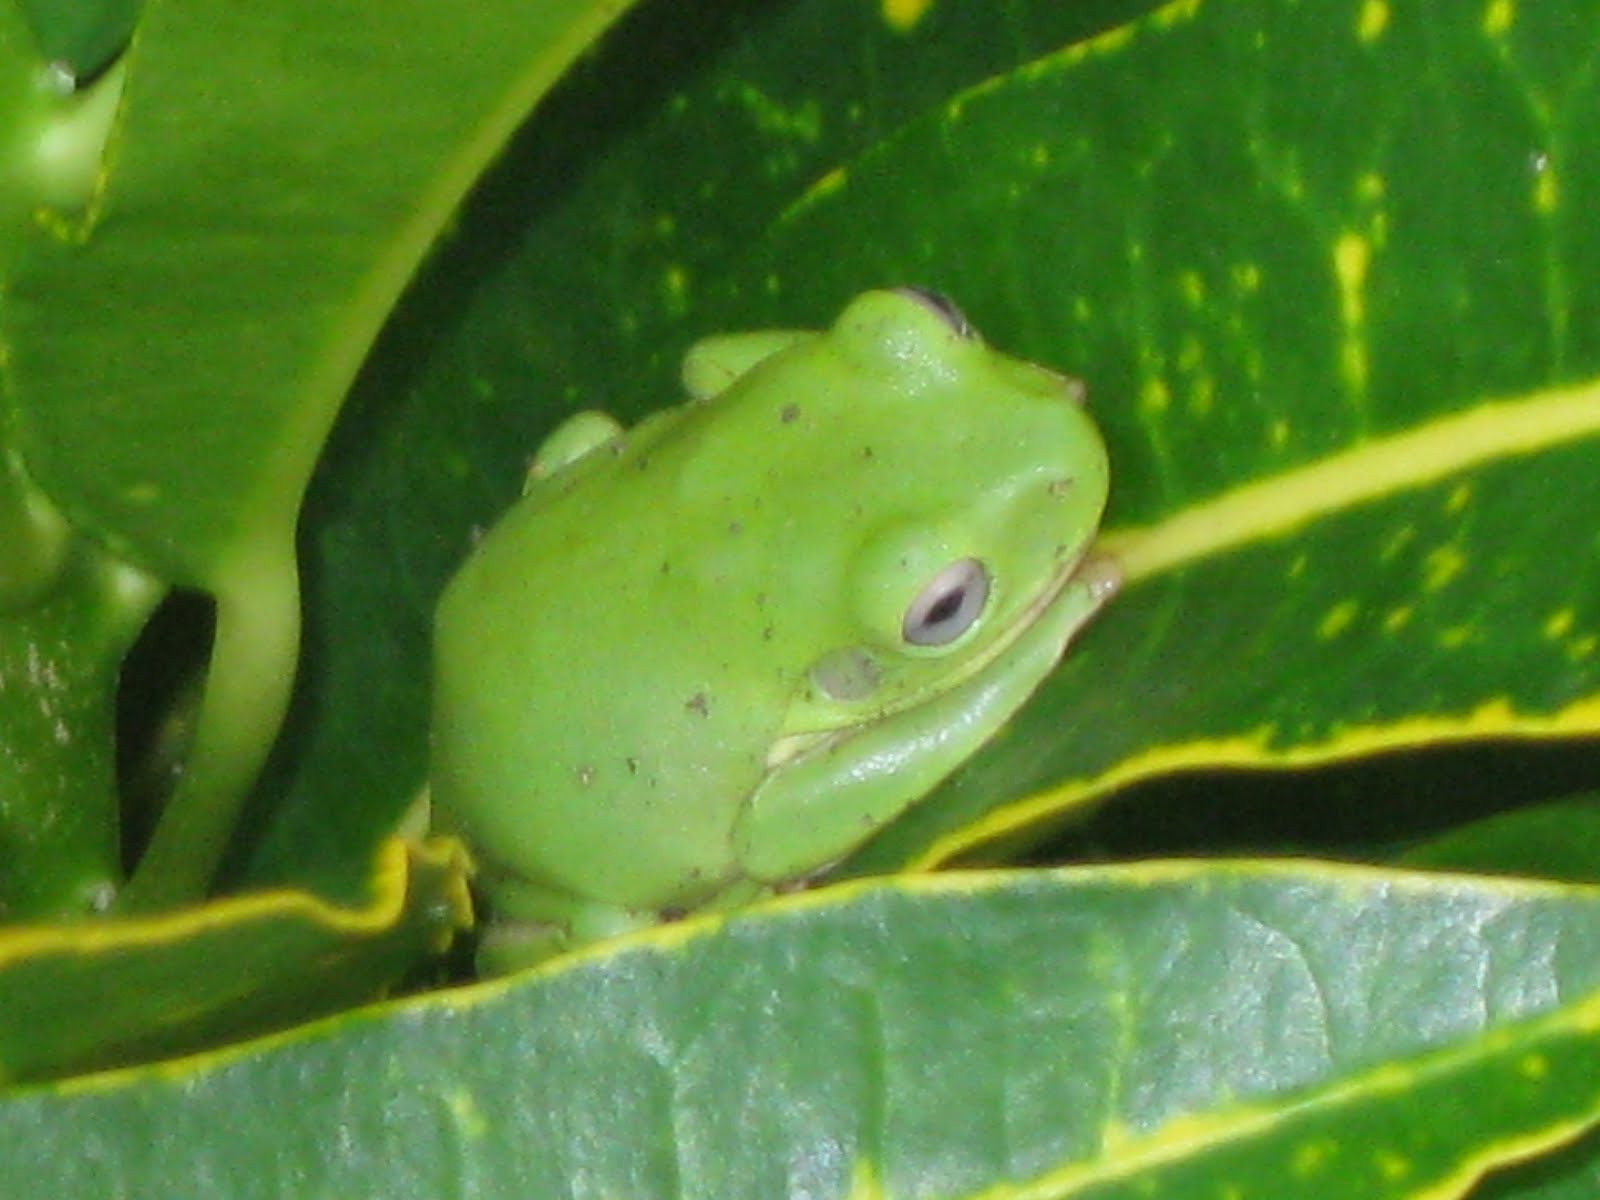 Poisonous Tree Frog Are Green Frogs Poisonous